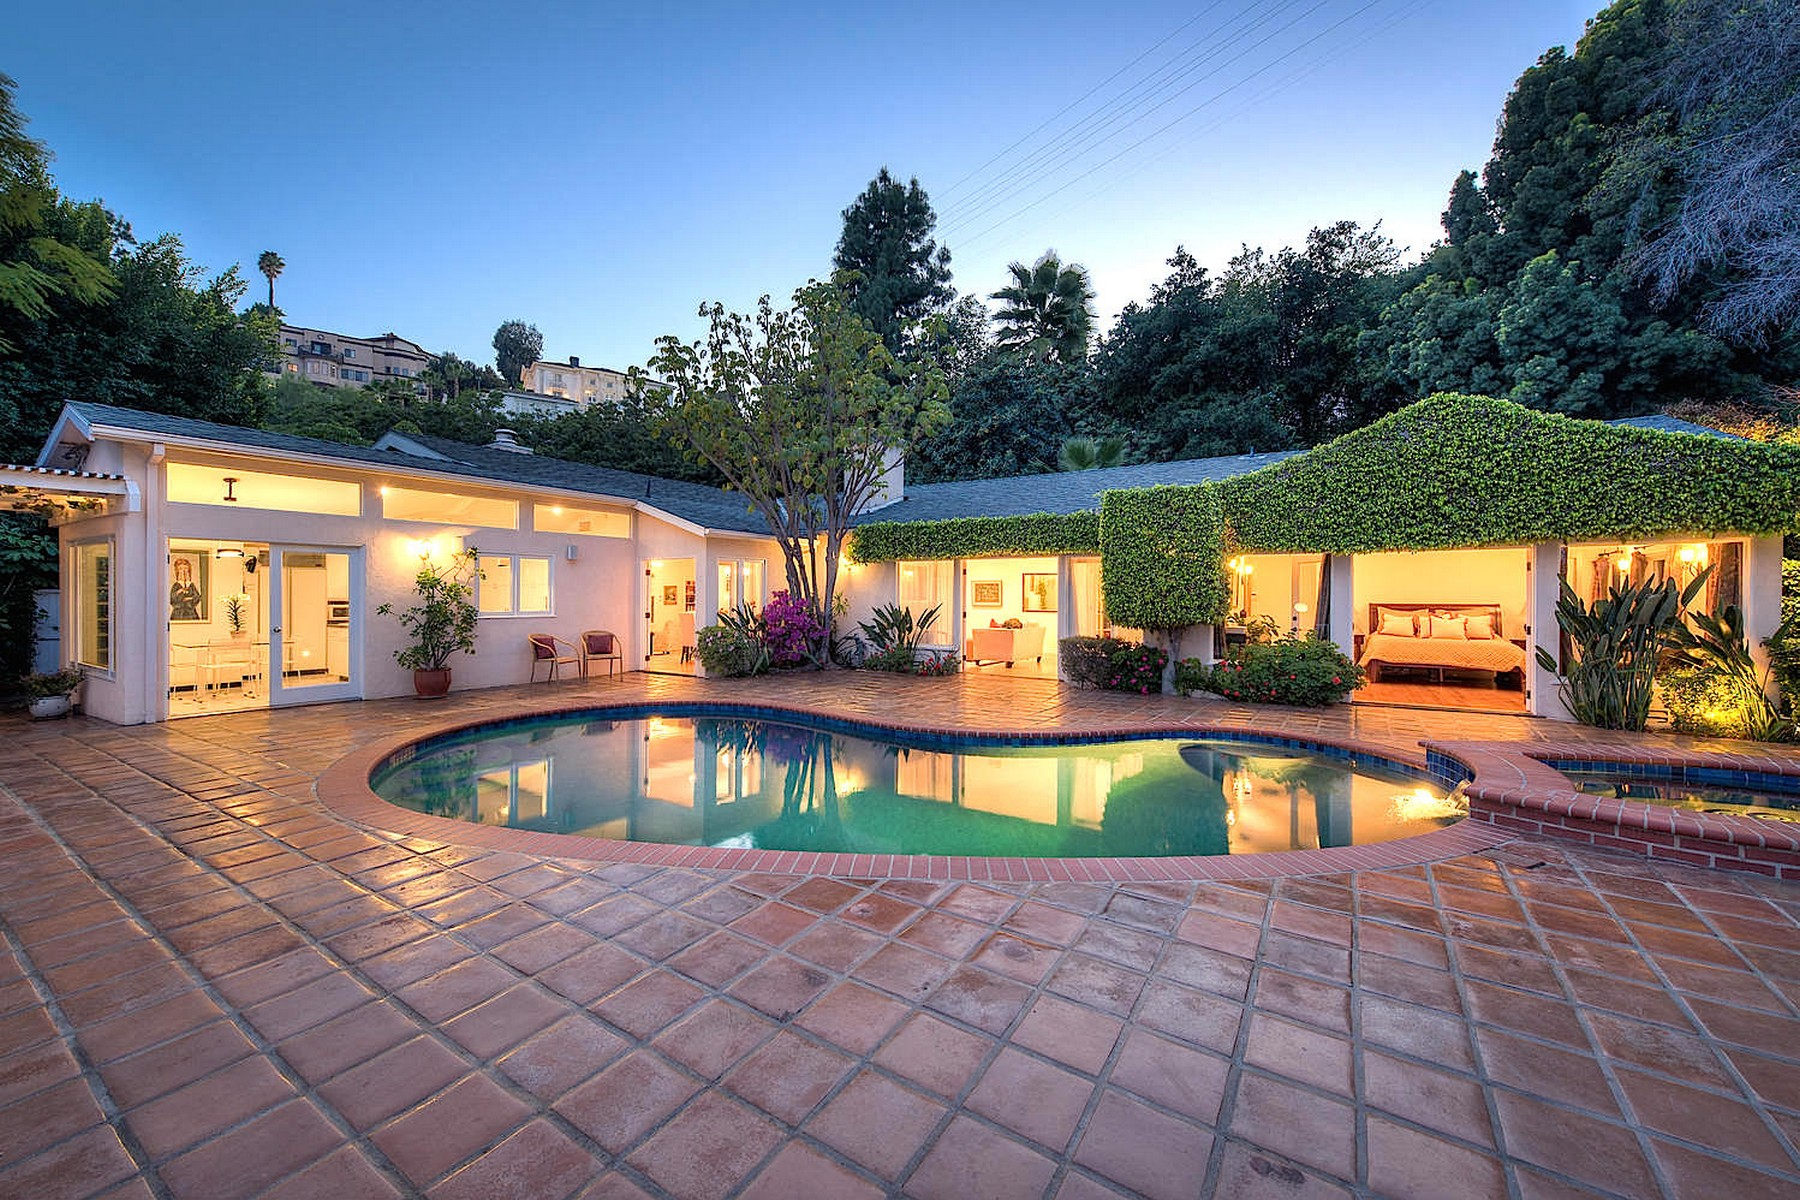 Single Family Home for Sale at 3521 Wrightwood Dr Studio City, California, 91604 United States